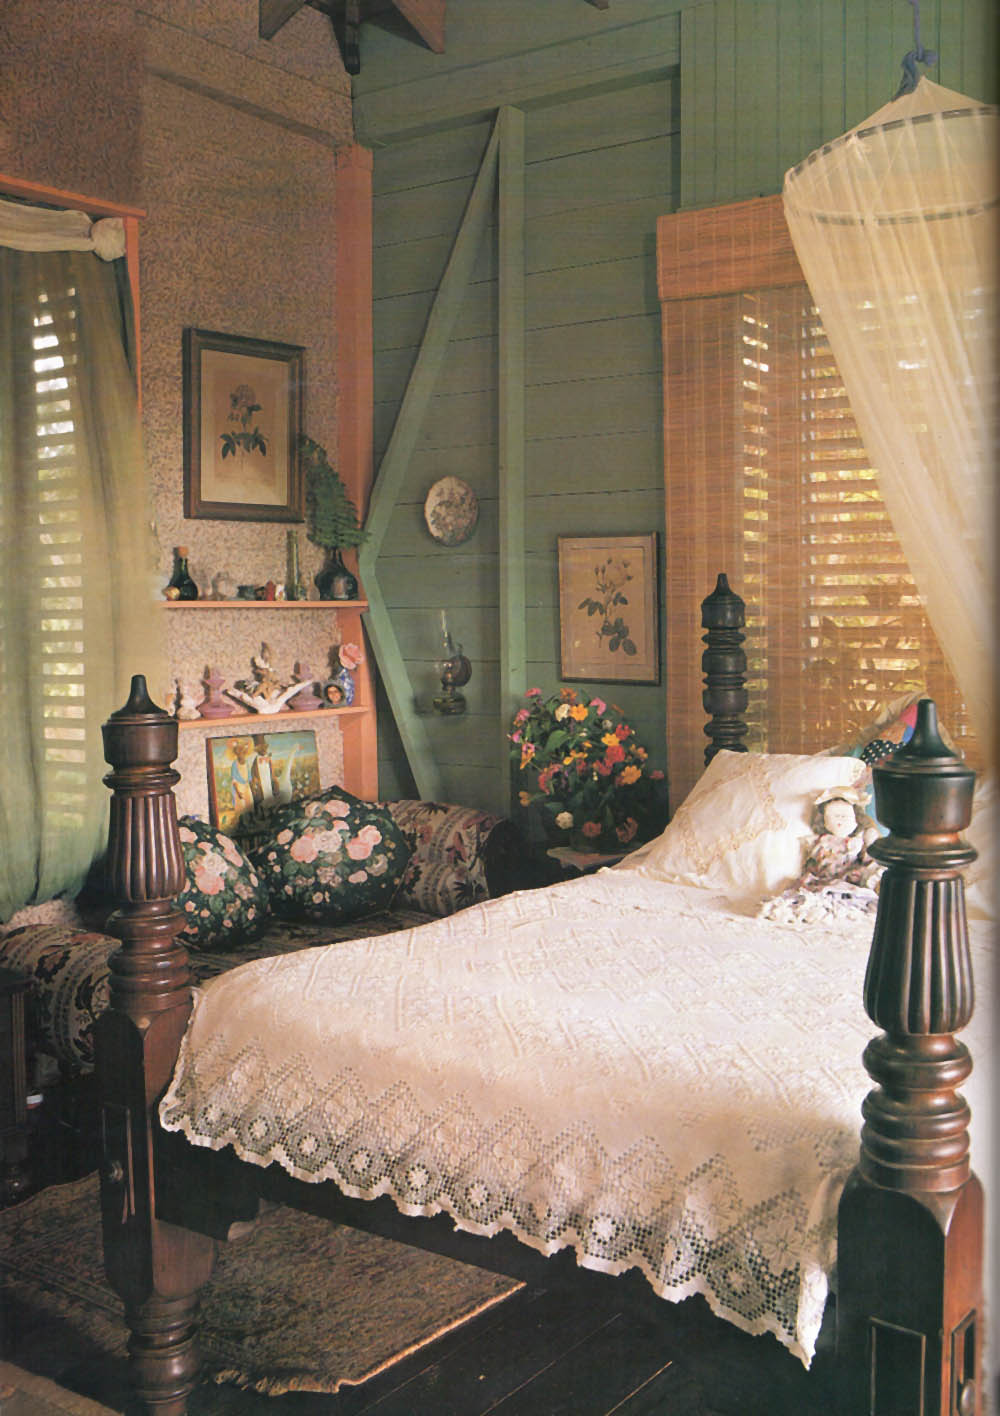 The master bedroom. Photograph by Steve Cohn